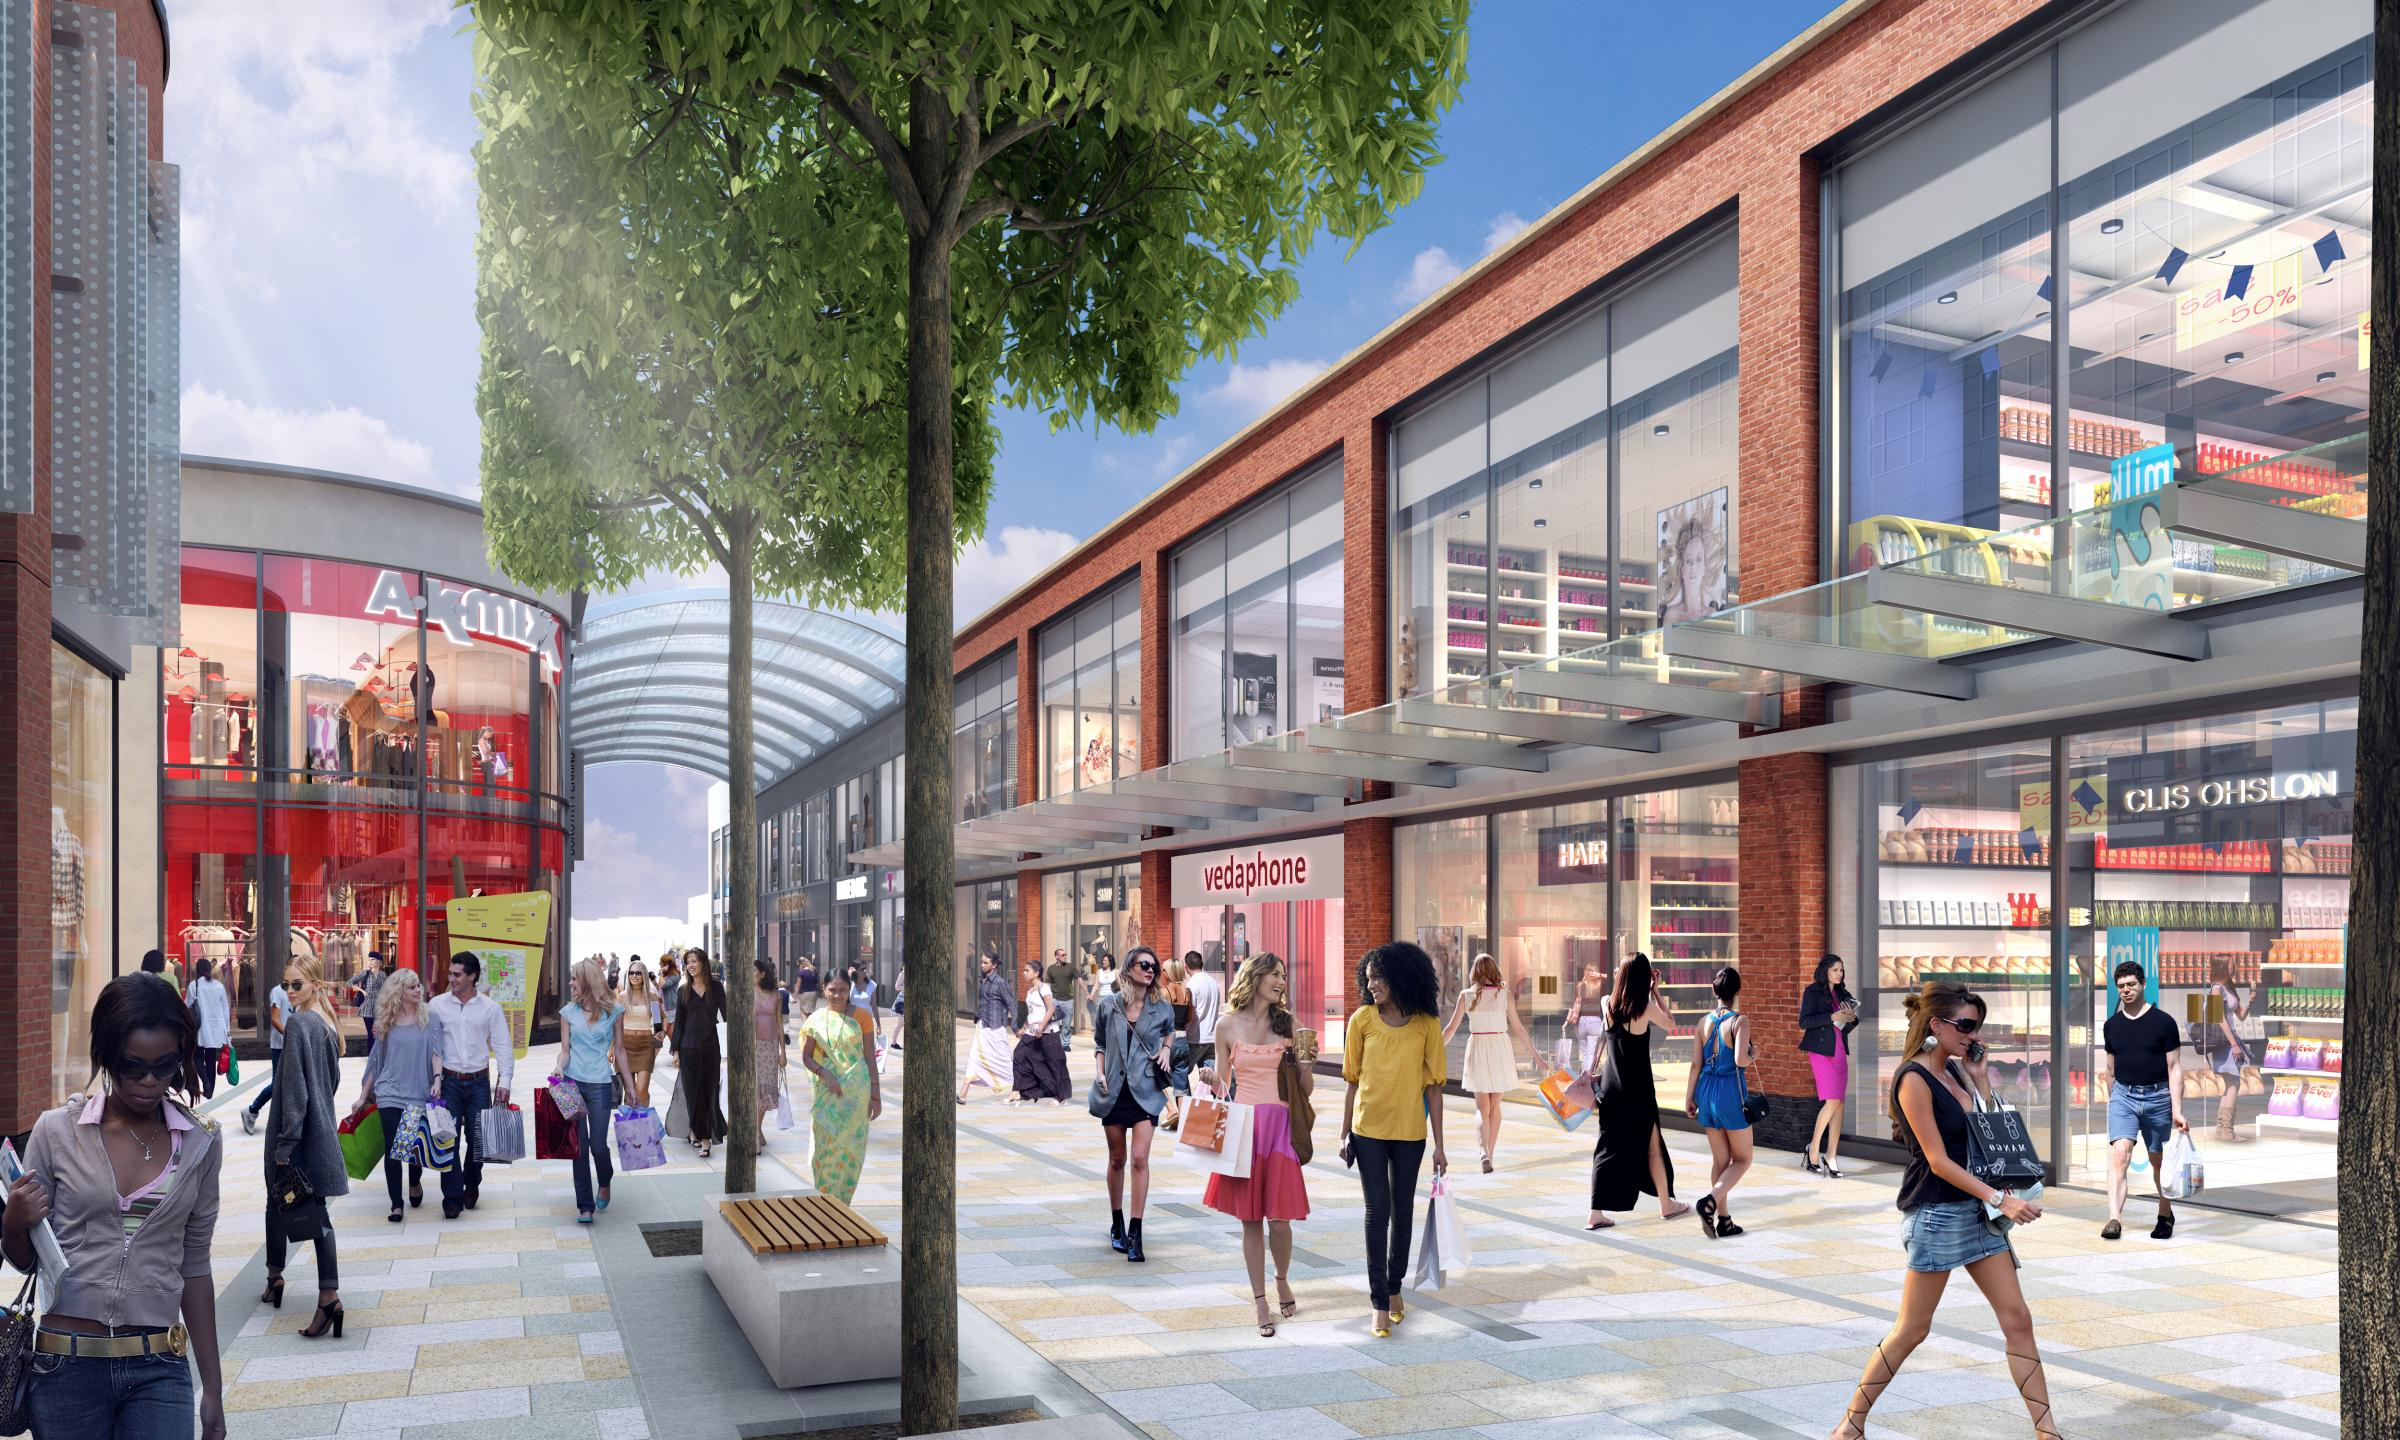 Bracknell town centres regeneration project the lexicon opening bracknell town centres regeneration project the lexicon opening date set for september 2017 bracknell news malvernweather Choice Image